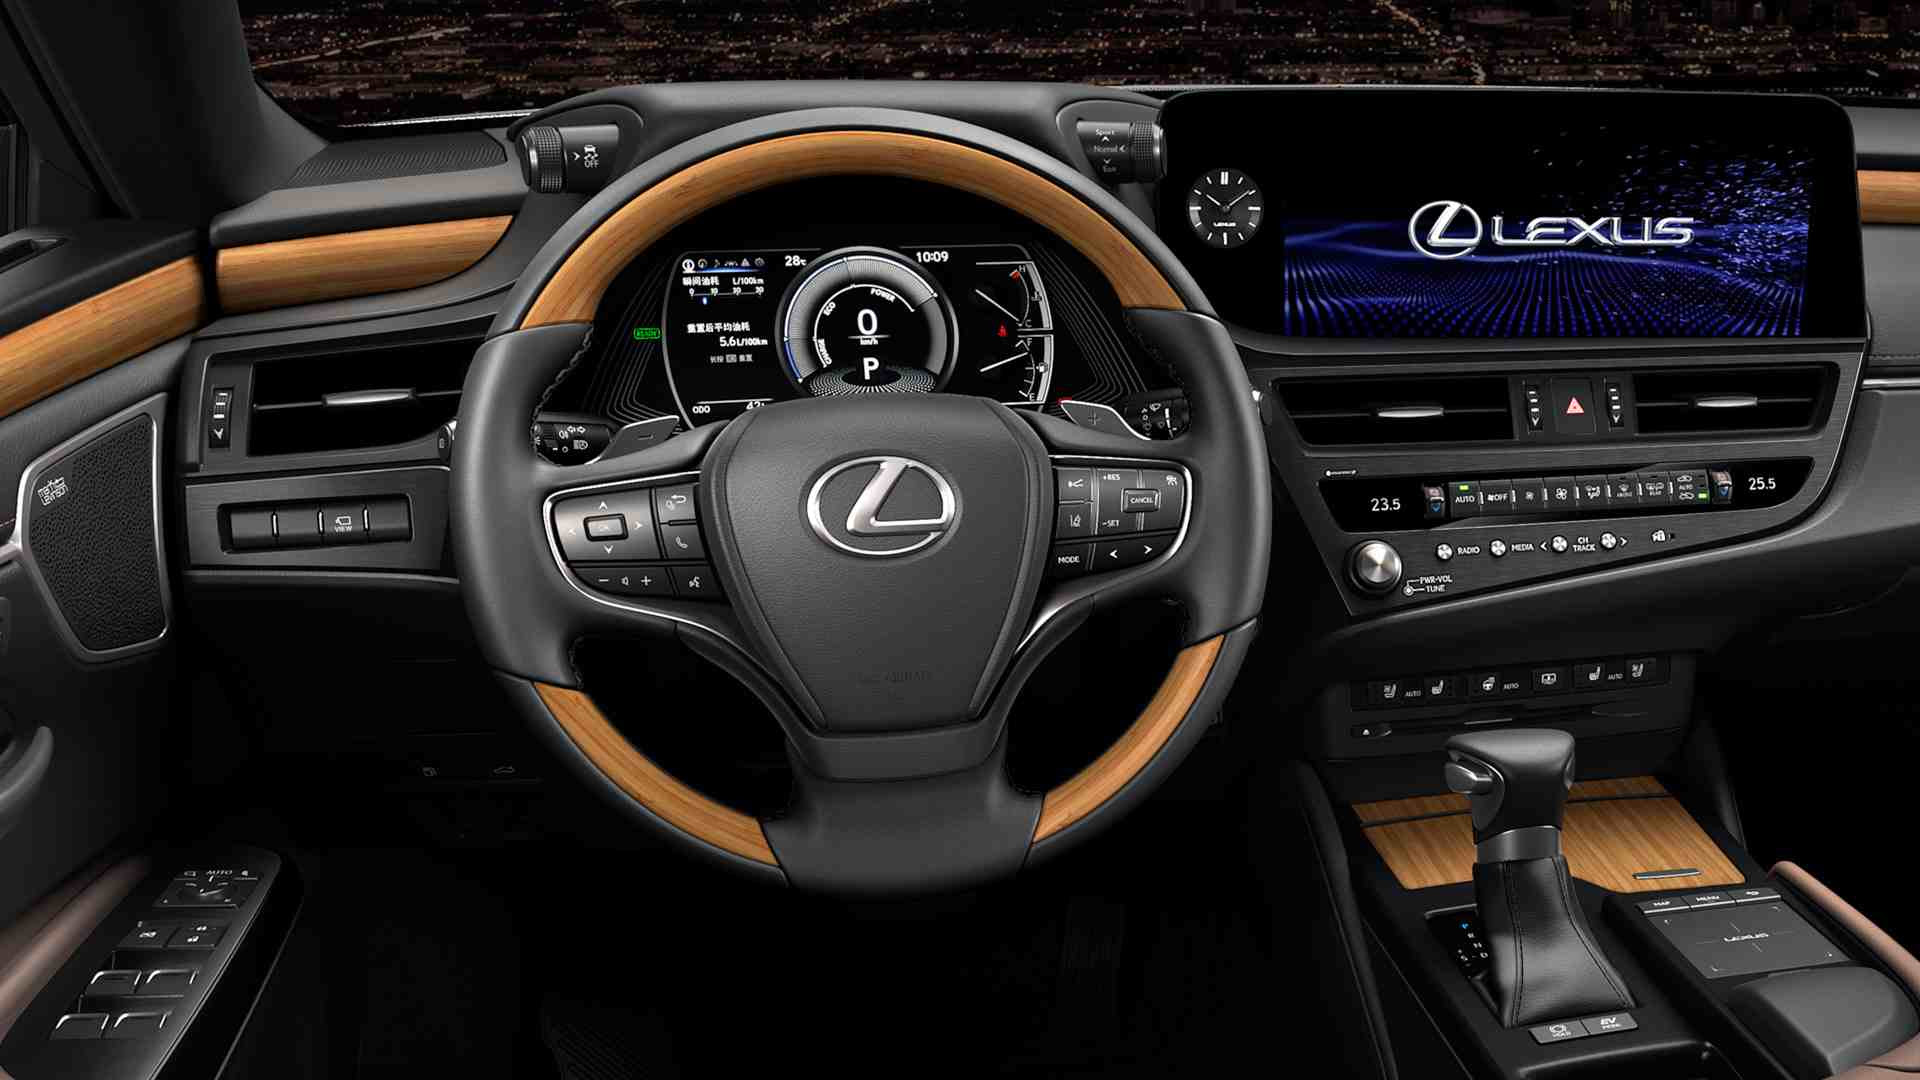 The main infotainment screen of the 2021 Lexus ES is now touch-operated. Image: Lexus